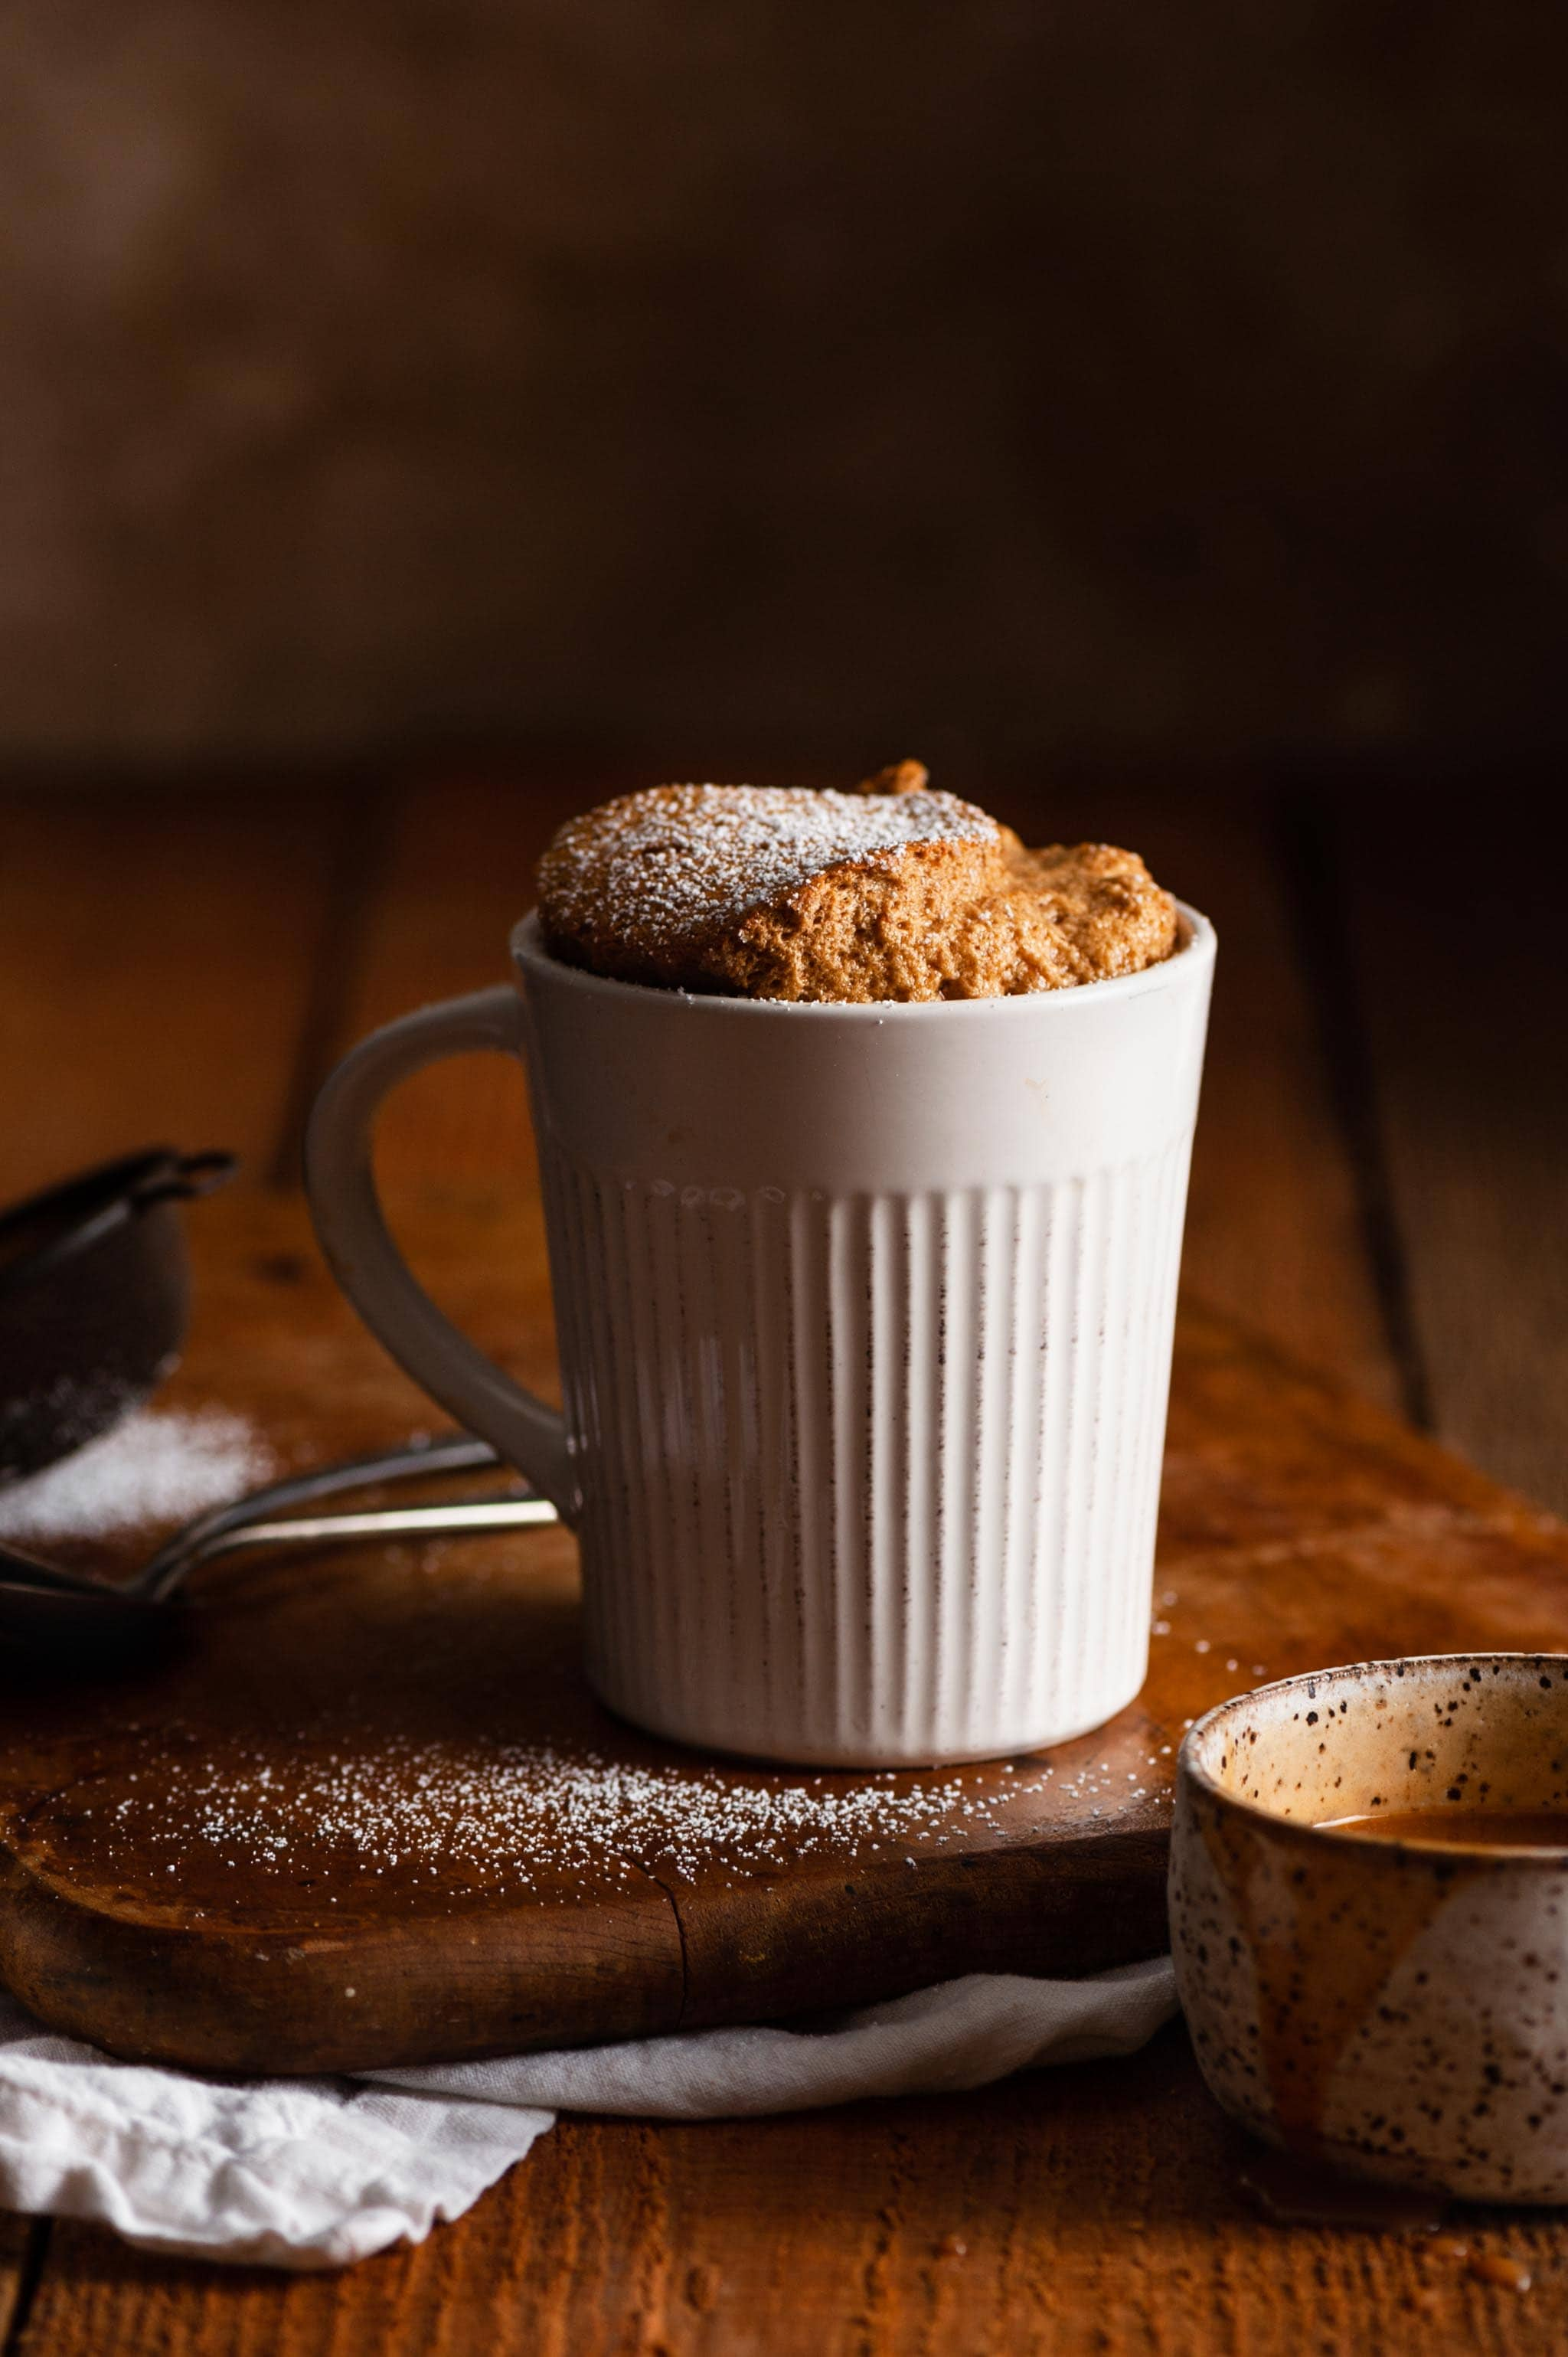 Gingerbread Souffle Dessert bakes in a coffee mug